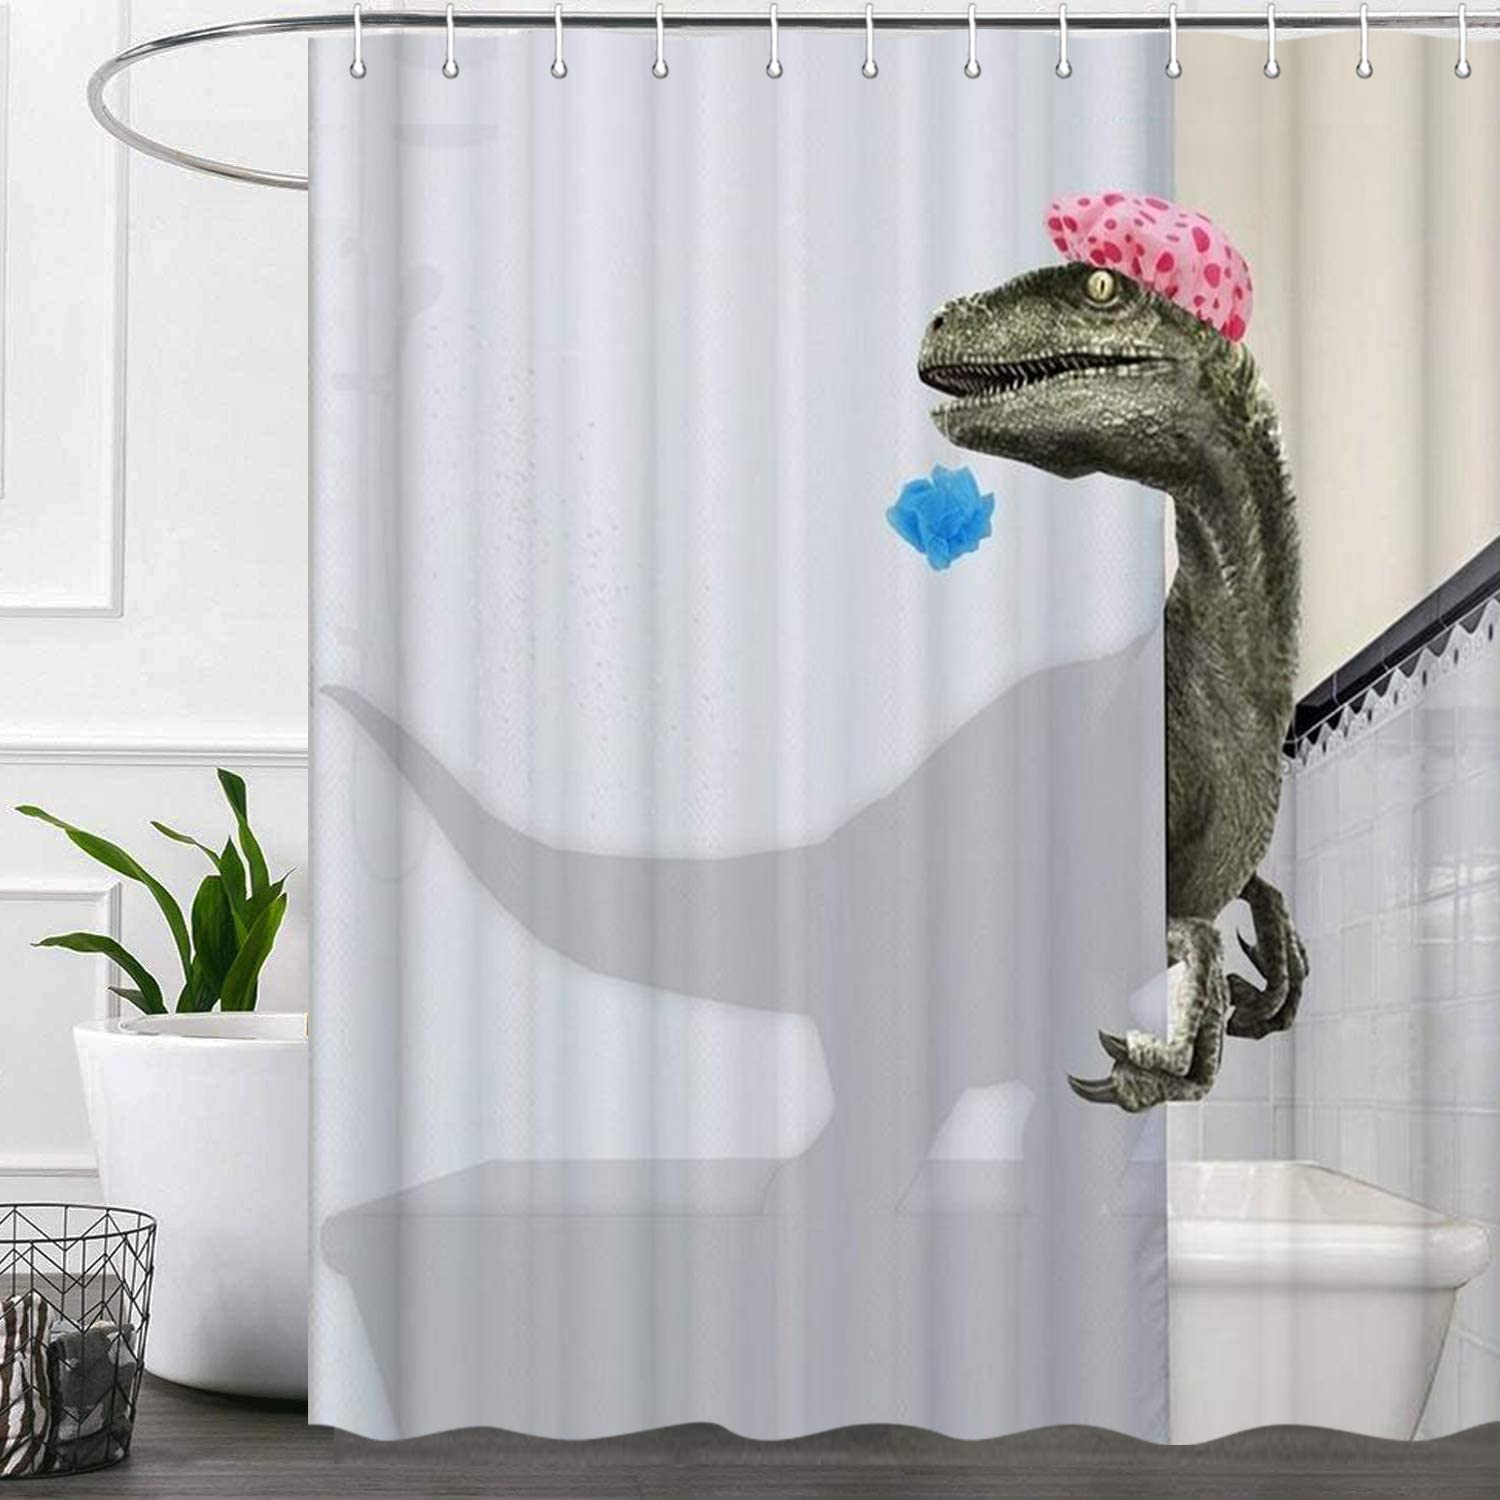 Funny Dinosaur Shower Curtains for Bathroom, White Cool Cute Unique Kids Fabric Shower Curtain Set, Fun Raptor Bathroom Accessories Decor, Hooks Included 72X72 Inches